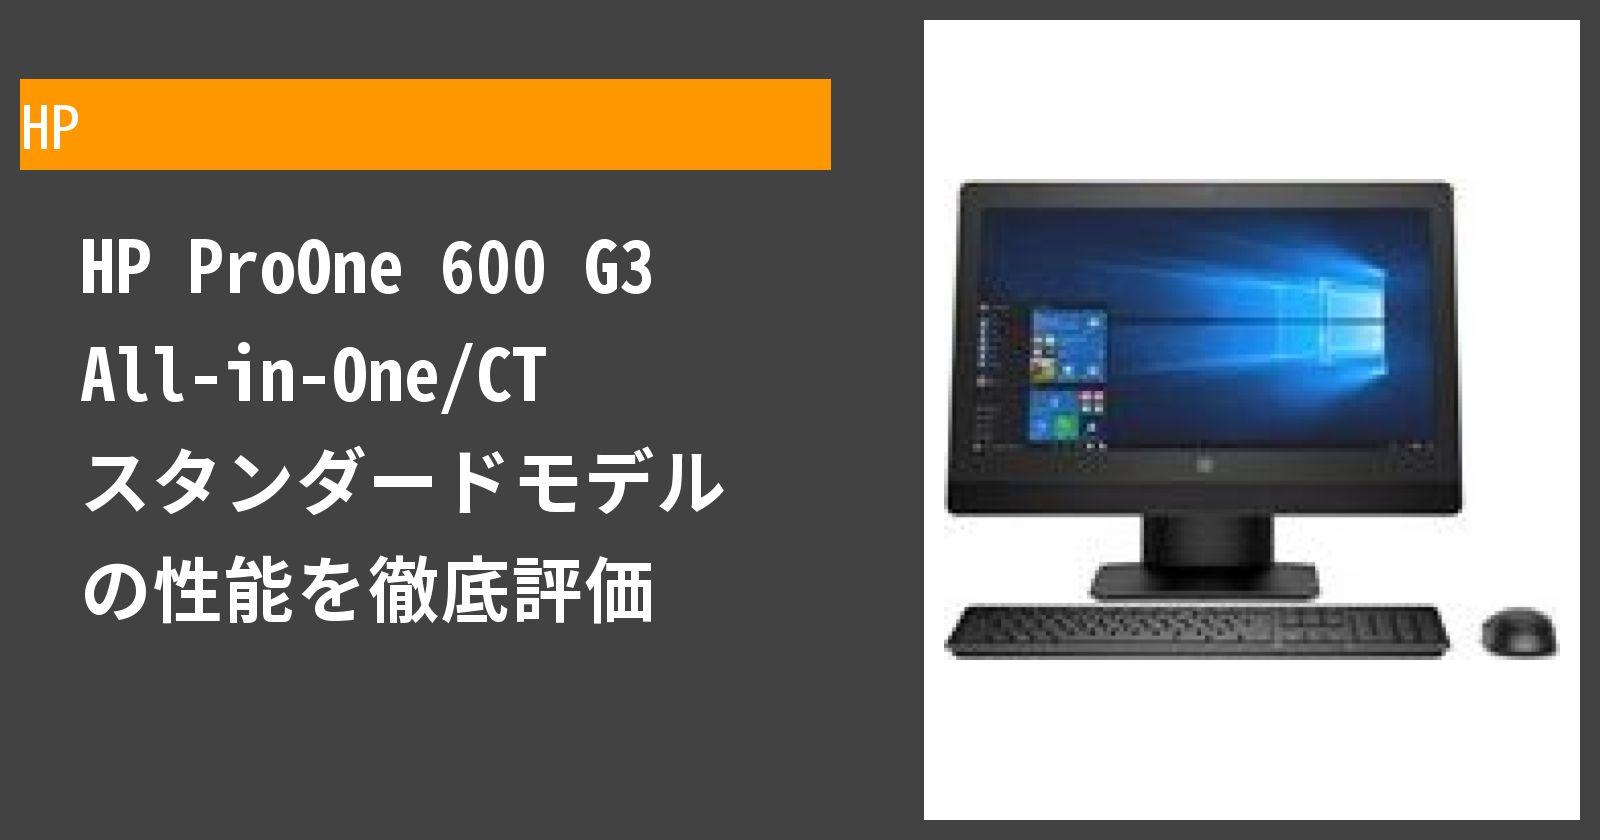 HP ProOne 600 G3 の性能を徹底評価